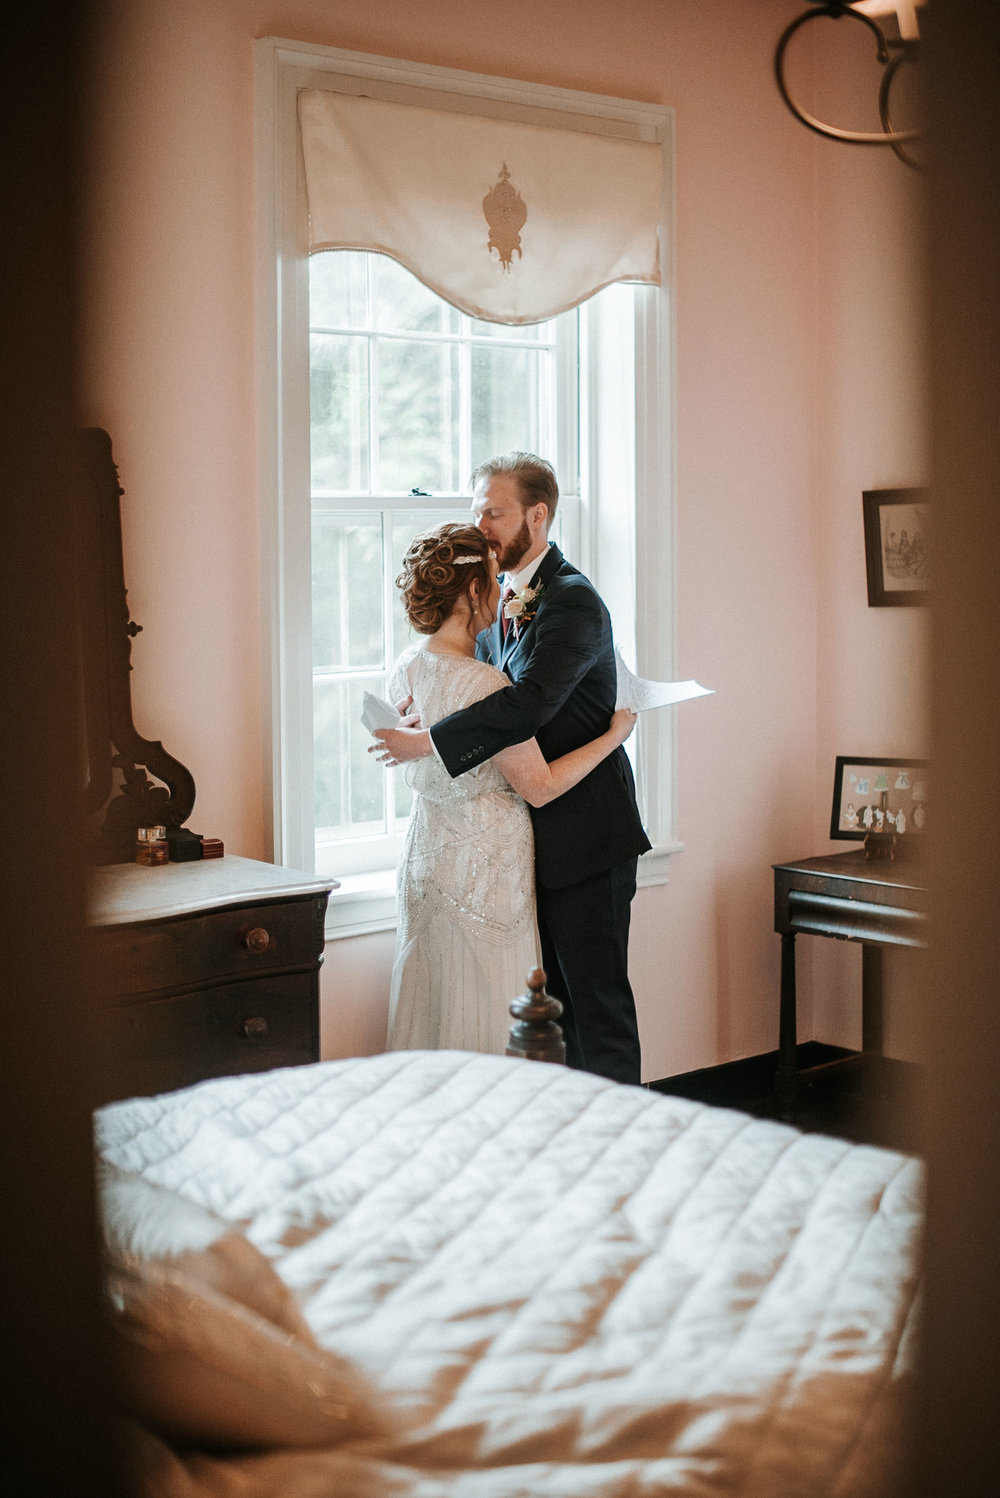 bride and groom embracing after reading letters to each other